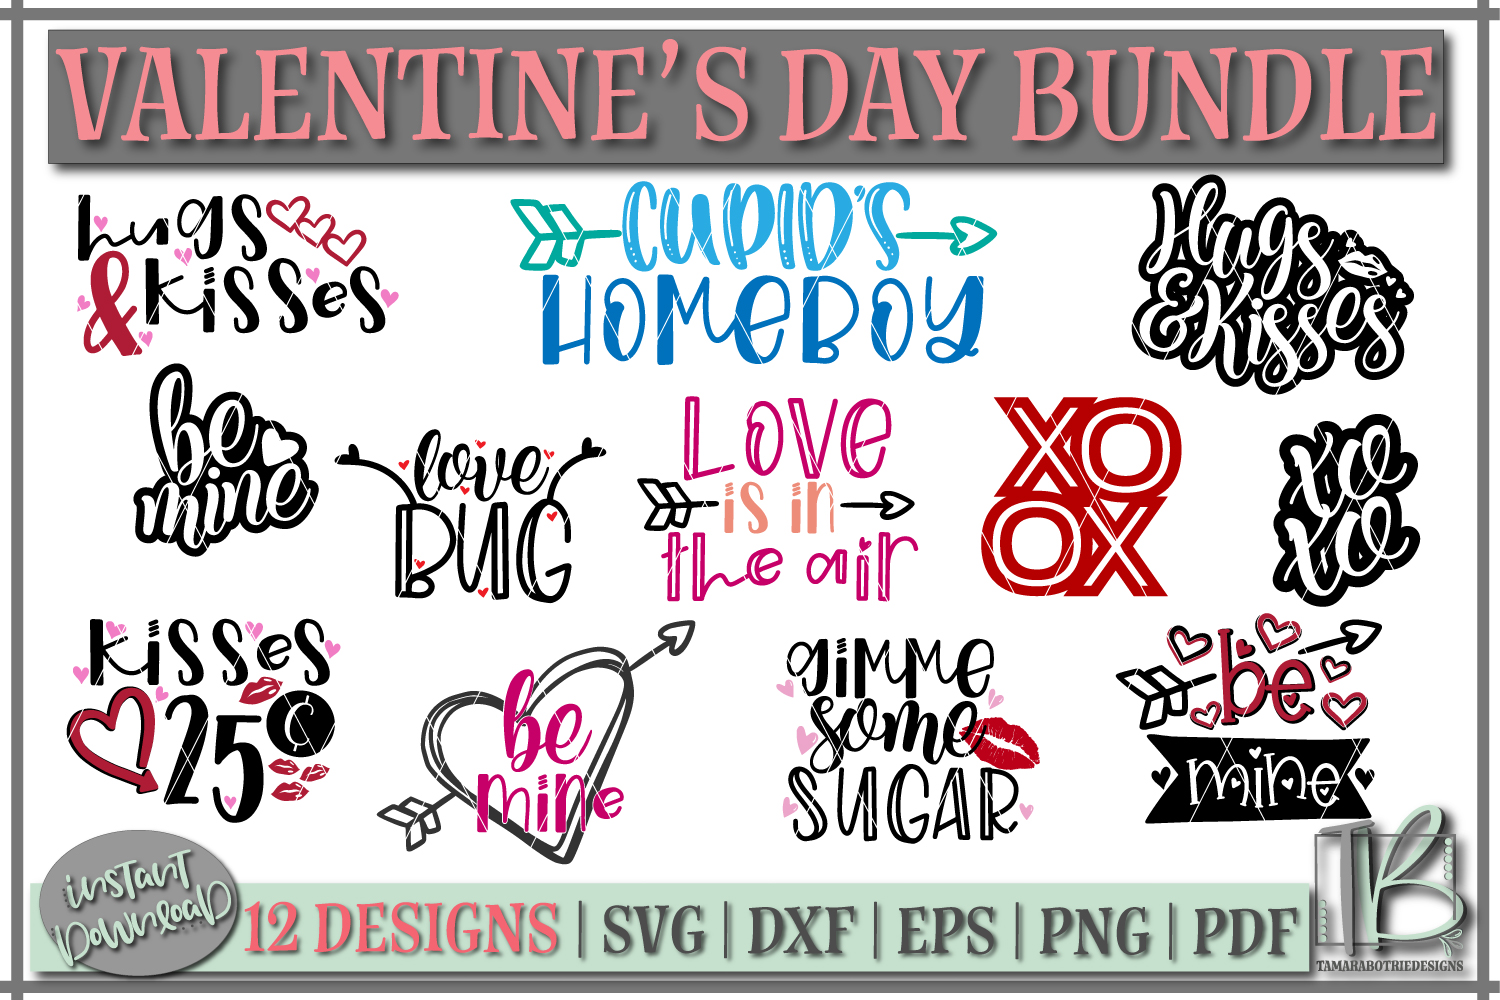 Download Free Valentine S Bundle Graphic By Tamarabotriedesigns Creative Fabrica for Cricut Explore, Silhouette and other cutting machines.